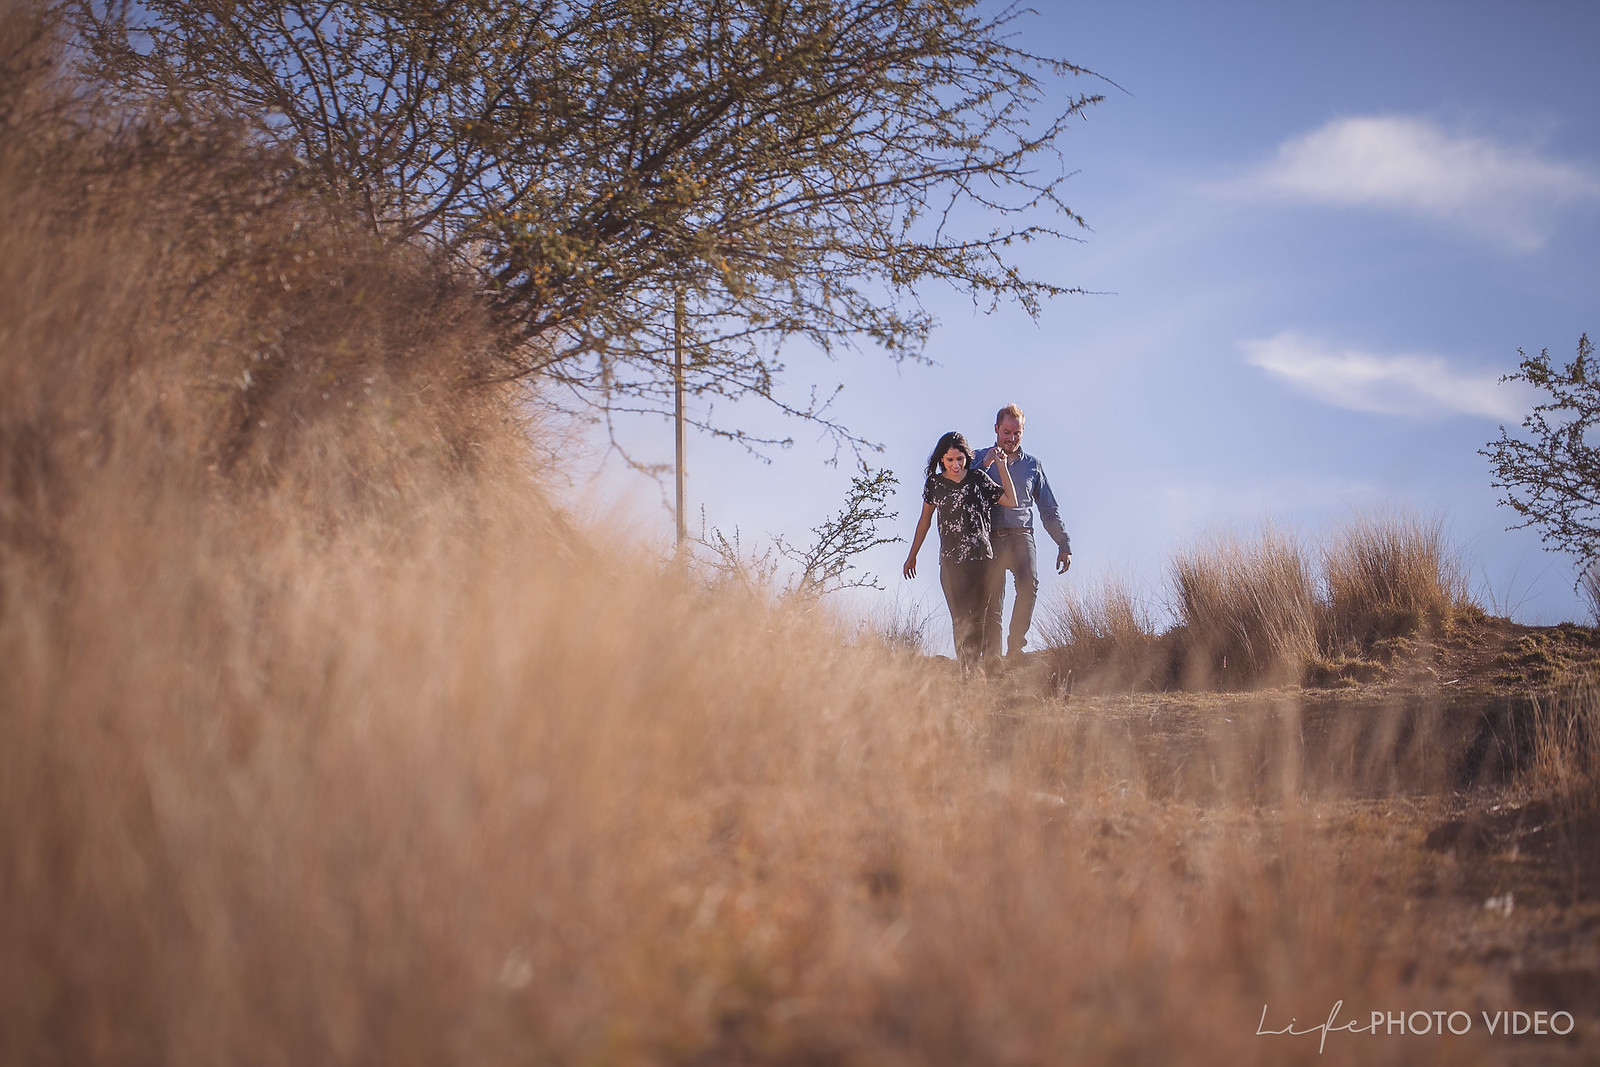 LifePhotoVideo_SesionCasual_M&M_ESession